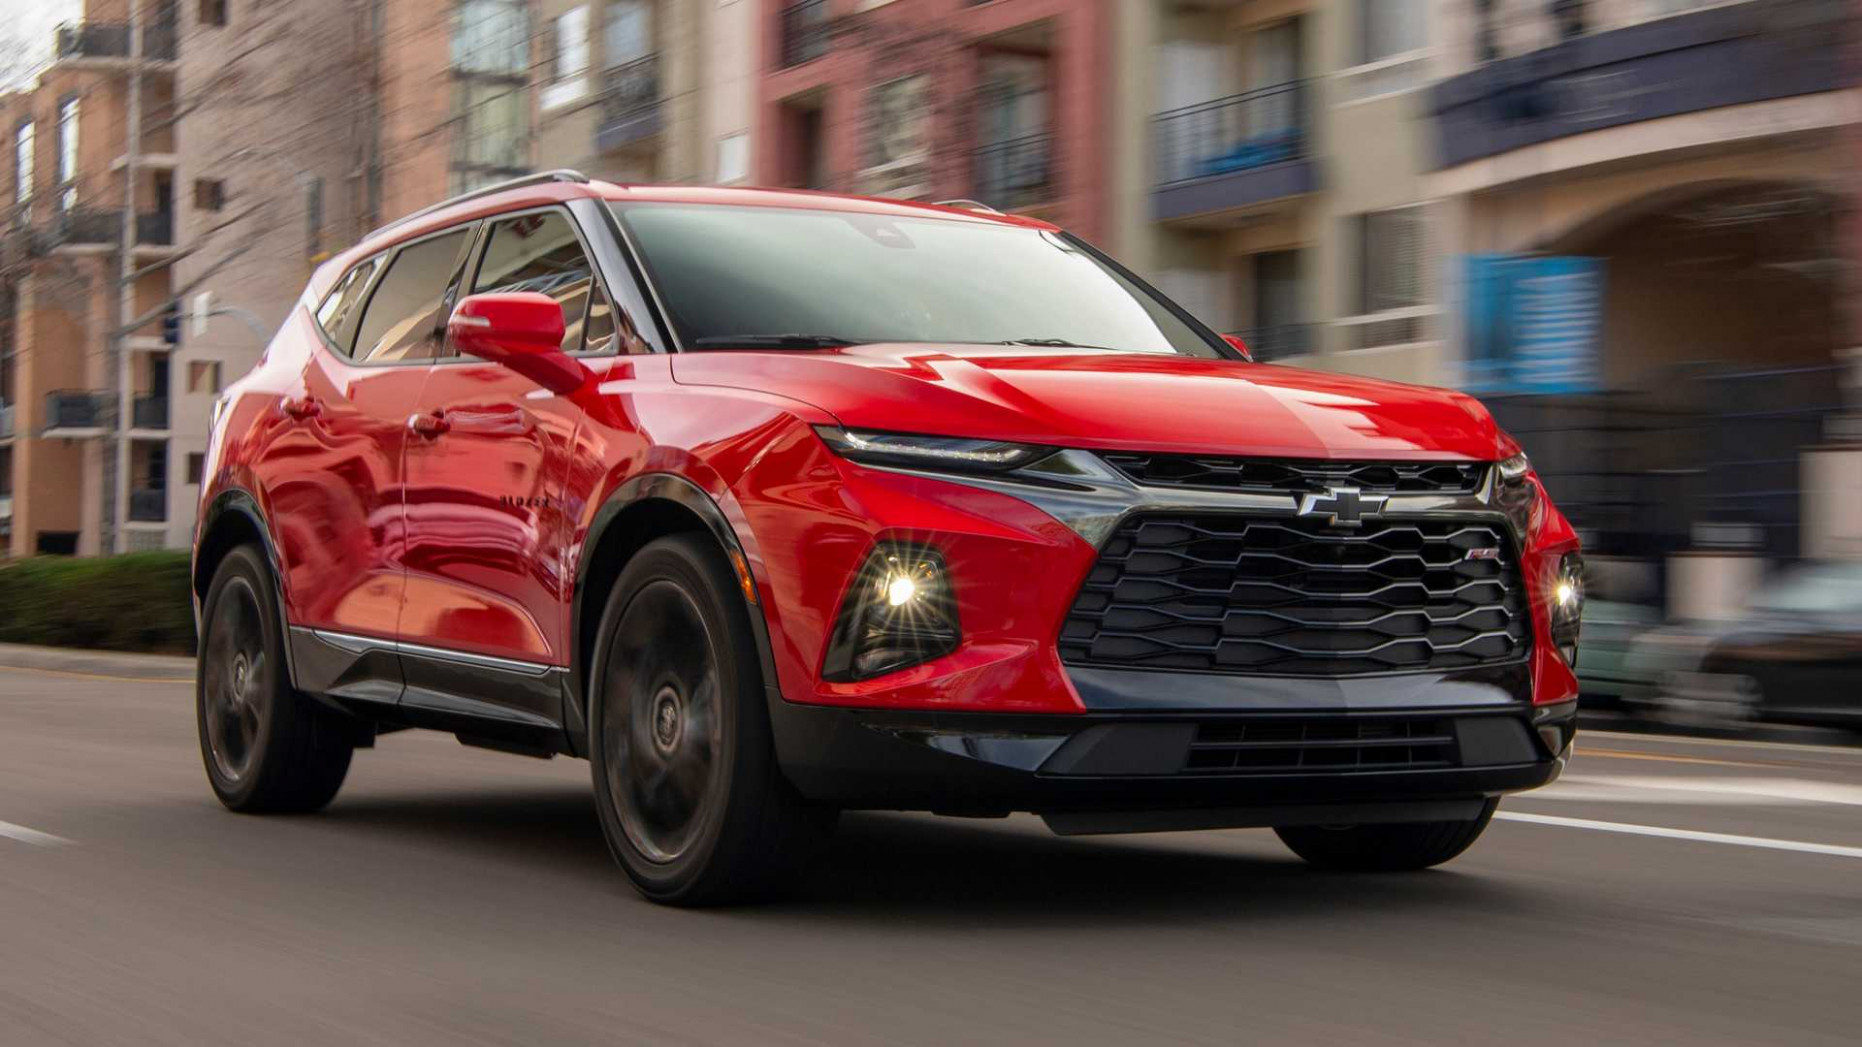 6 Chevrolet Blazer Turbo Reportedly Starts At $6,6 - gmc blazer 2020 price